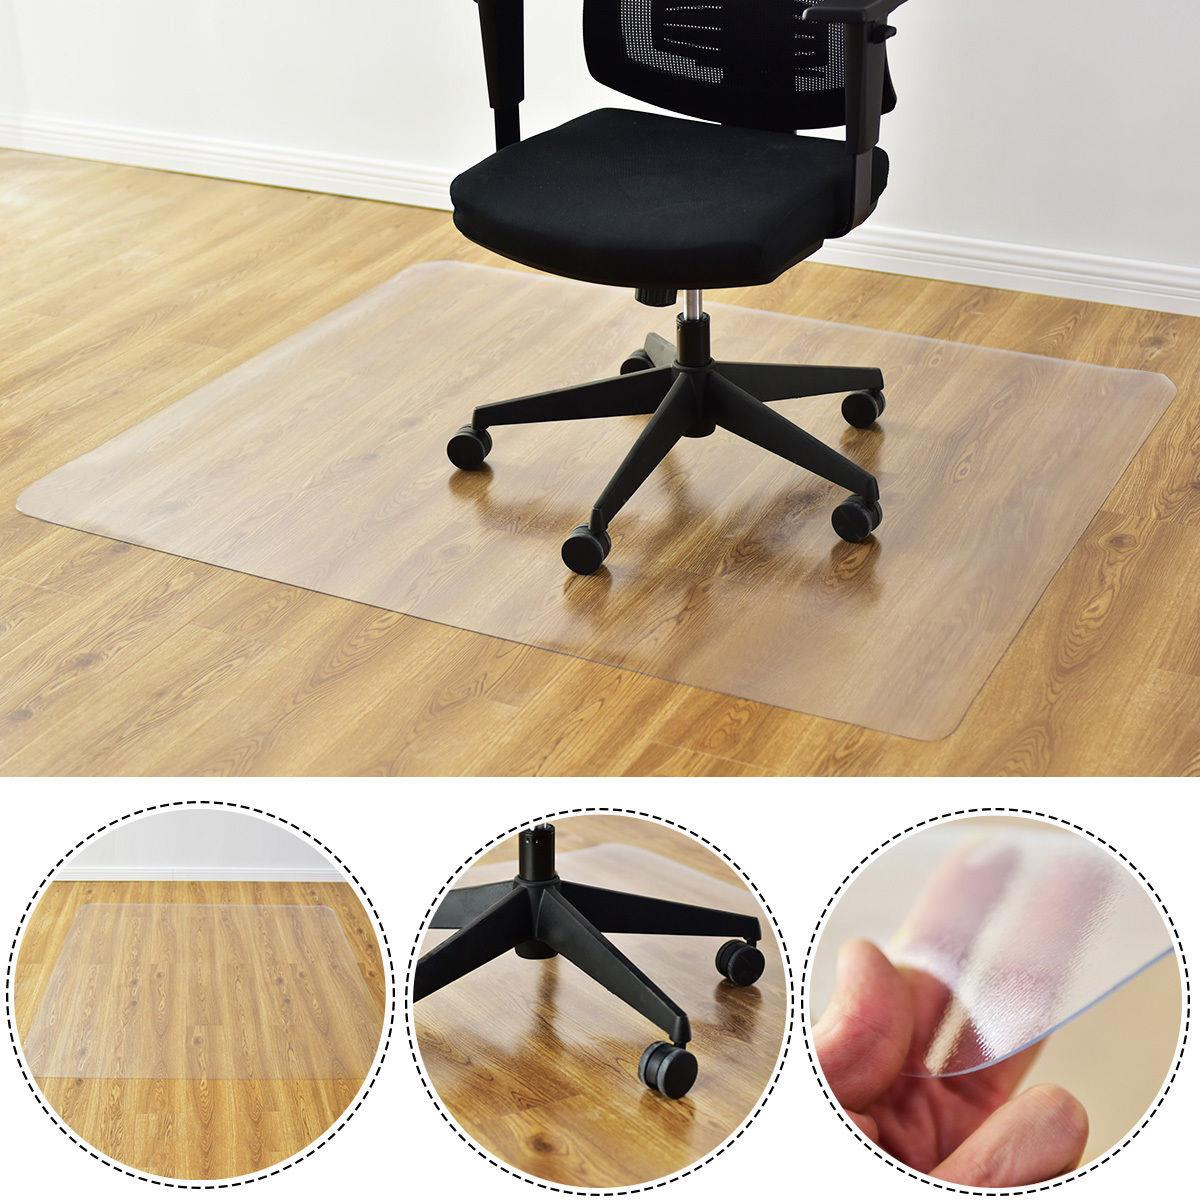 Ktaxon Pvc Matte Floor Protection Pad, Will A Rolling Office Chair Damage Laminate Flooring